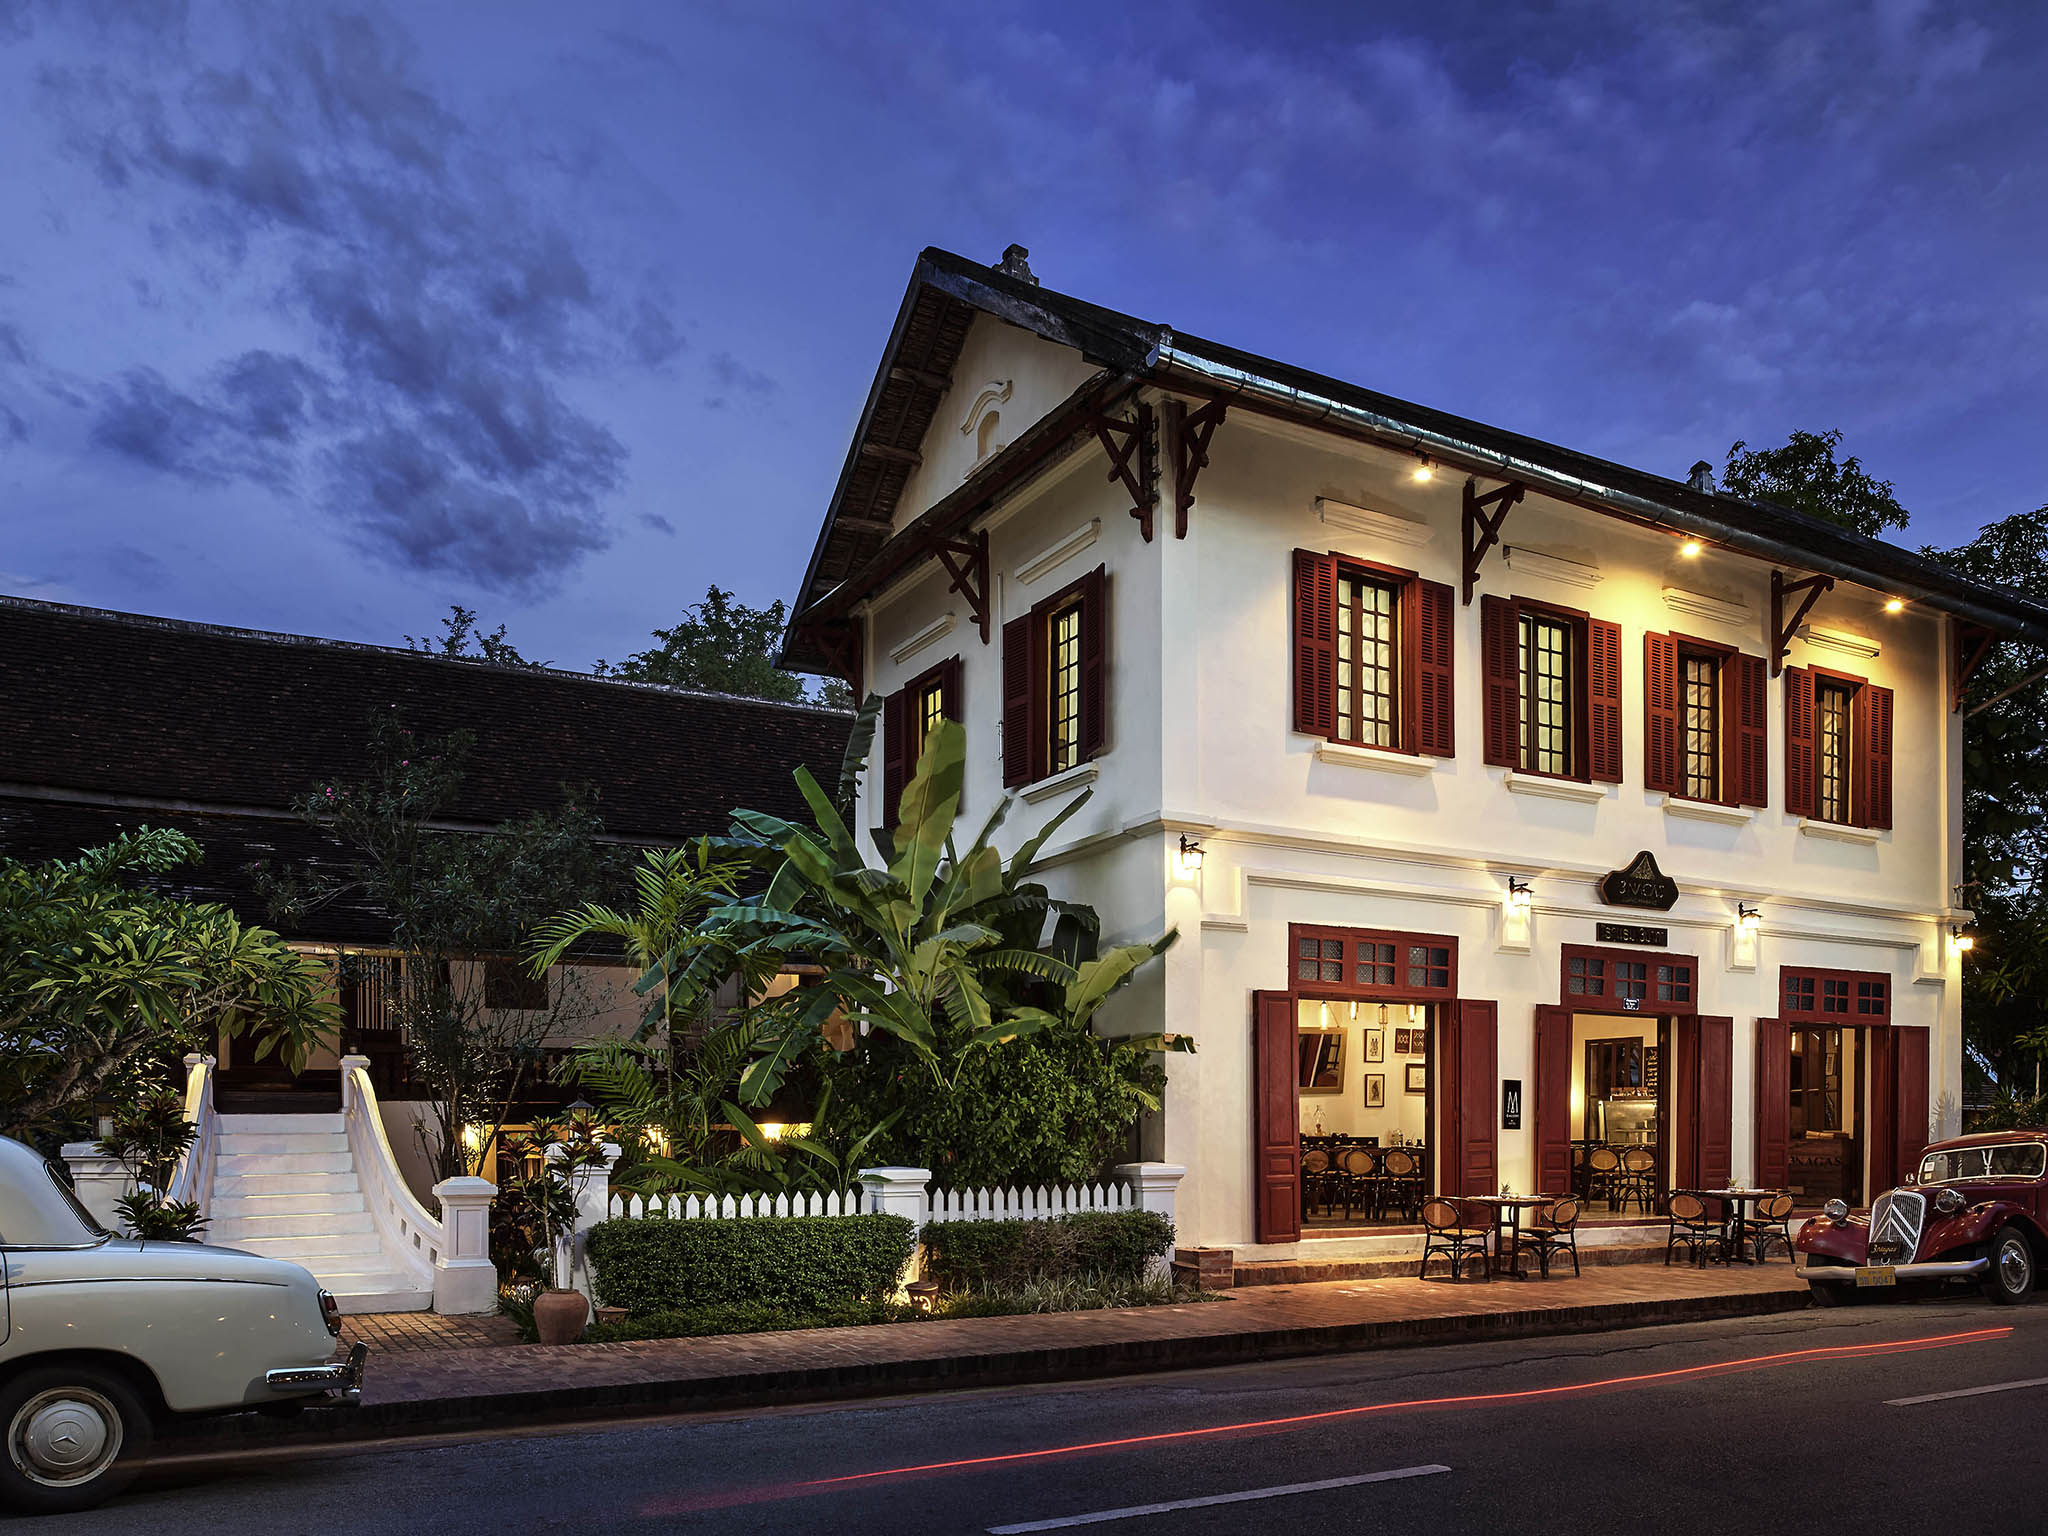 Hotel in luang prabang 3 nagas luang prabang mgallery by for Luang prabang luxury hotels